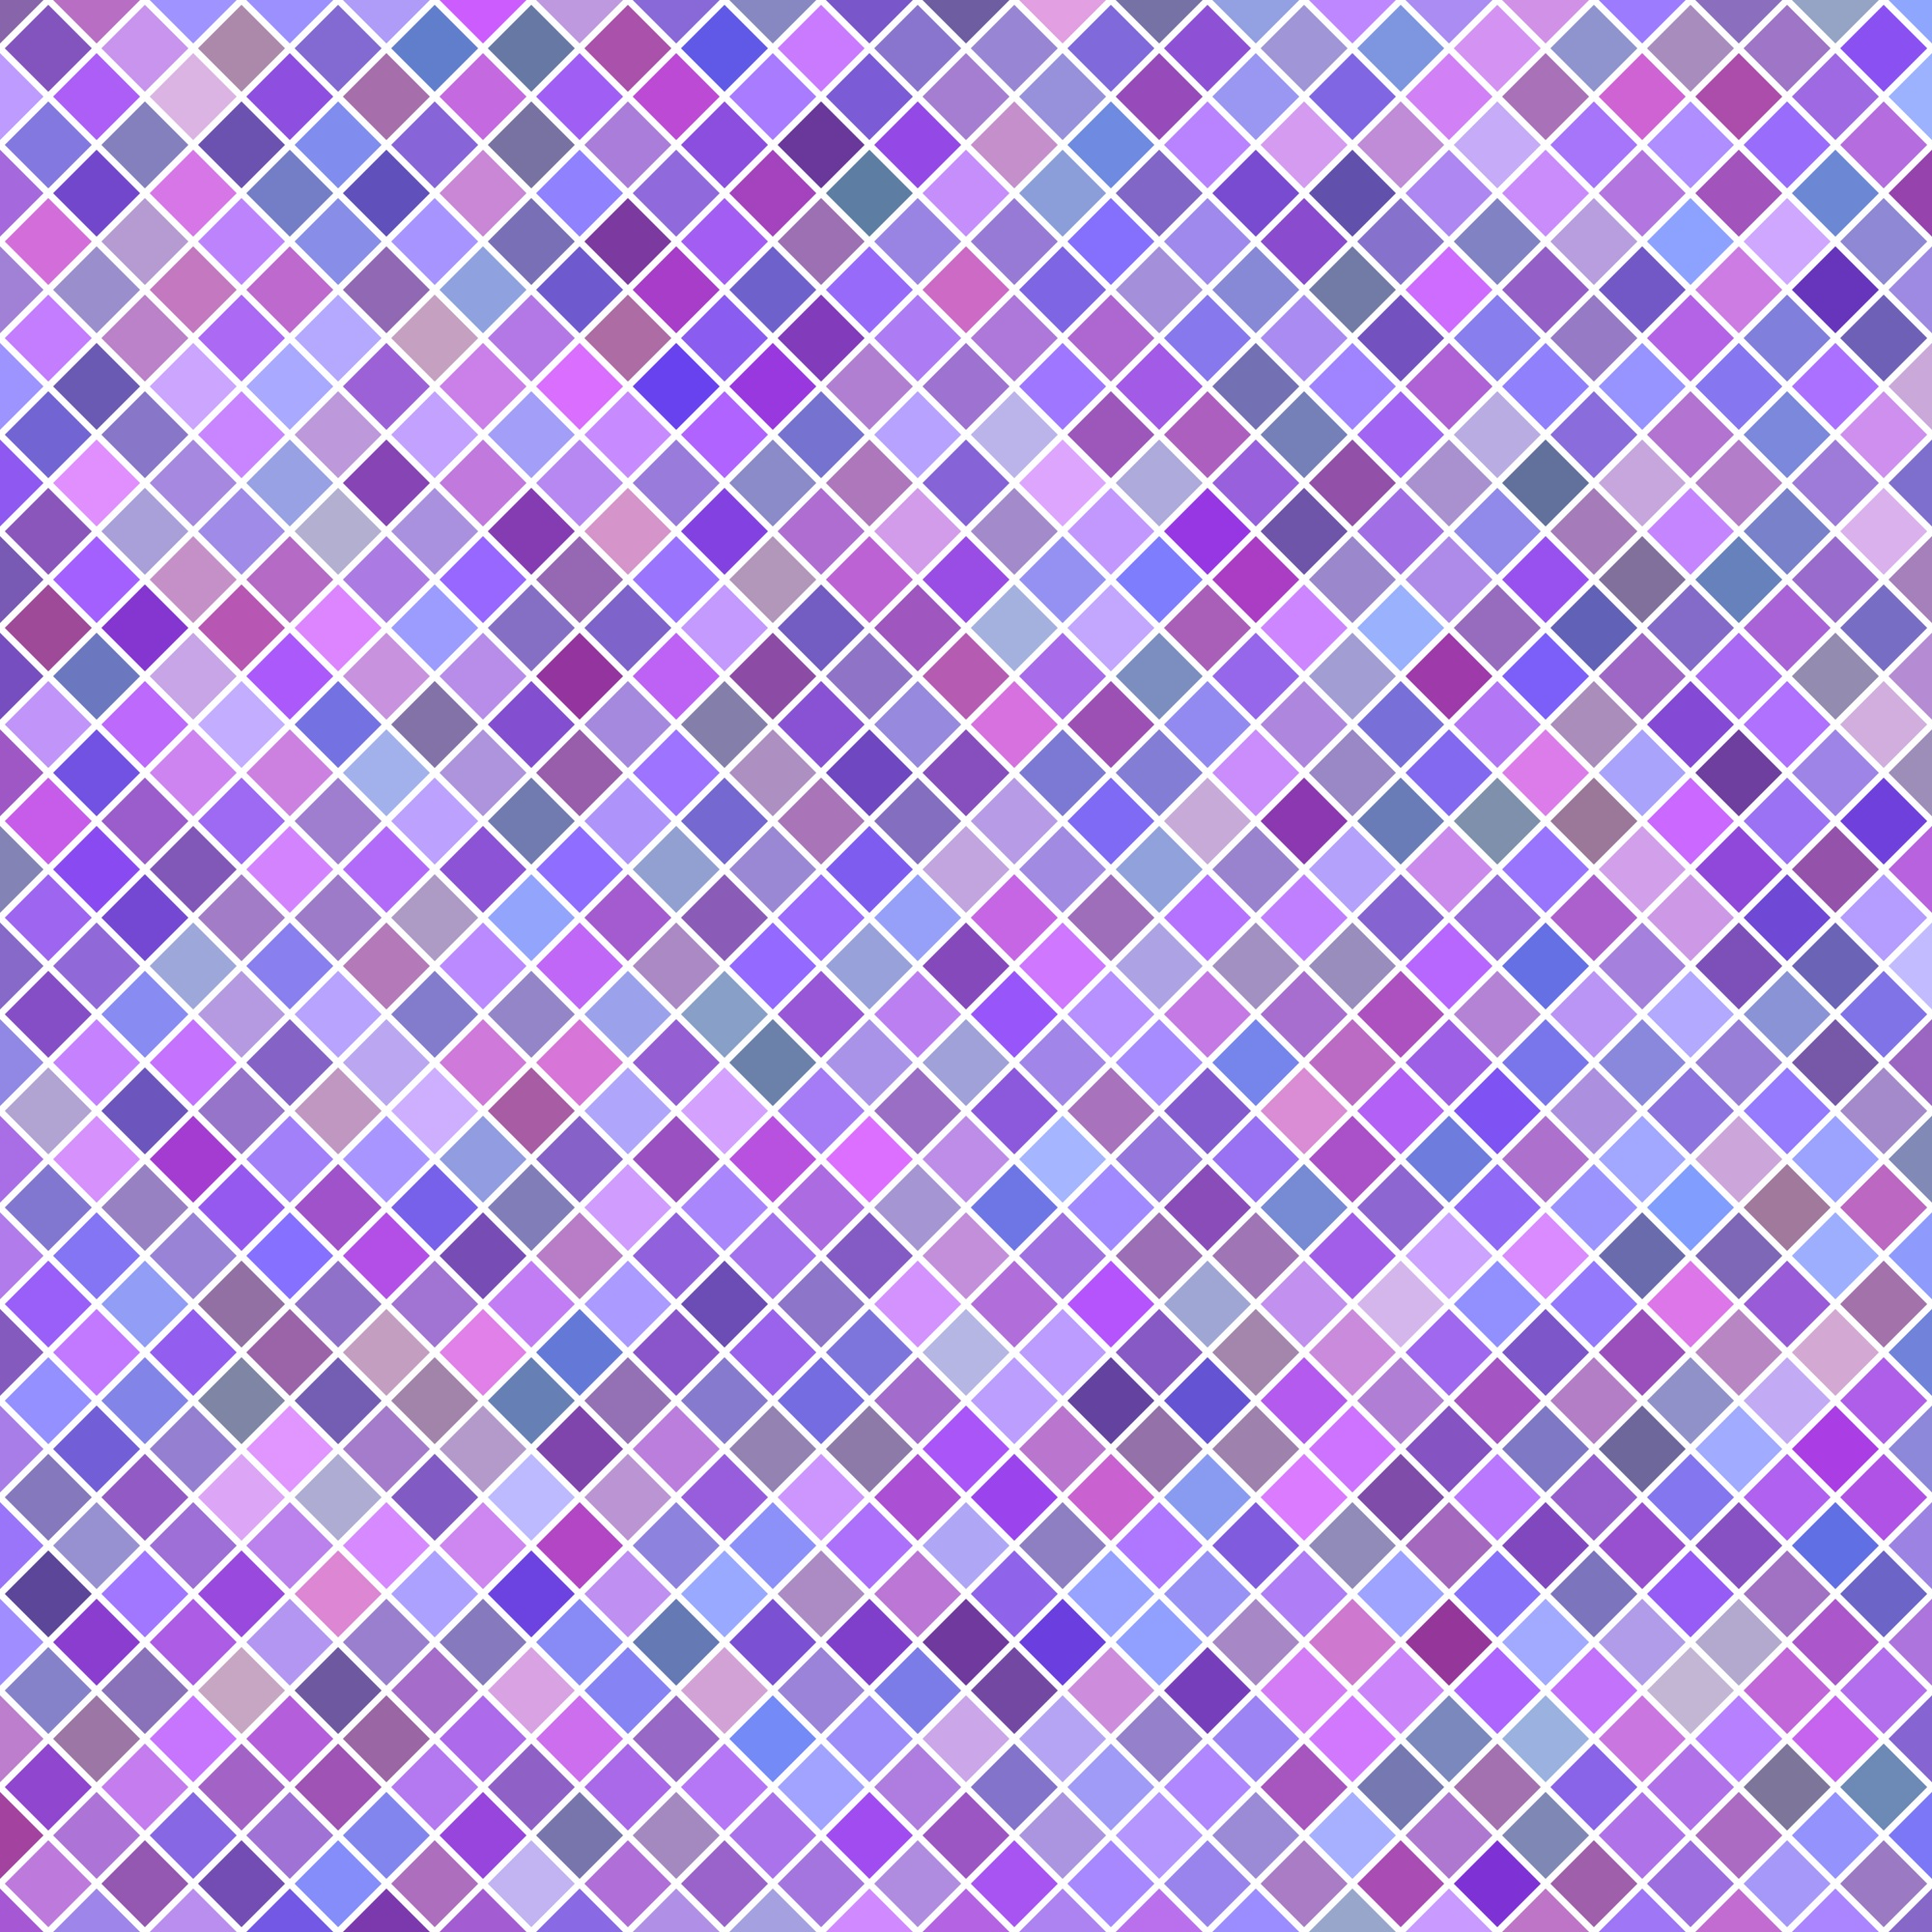 Color abstract diagonal square pattern background - vector illustration from purple squares